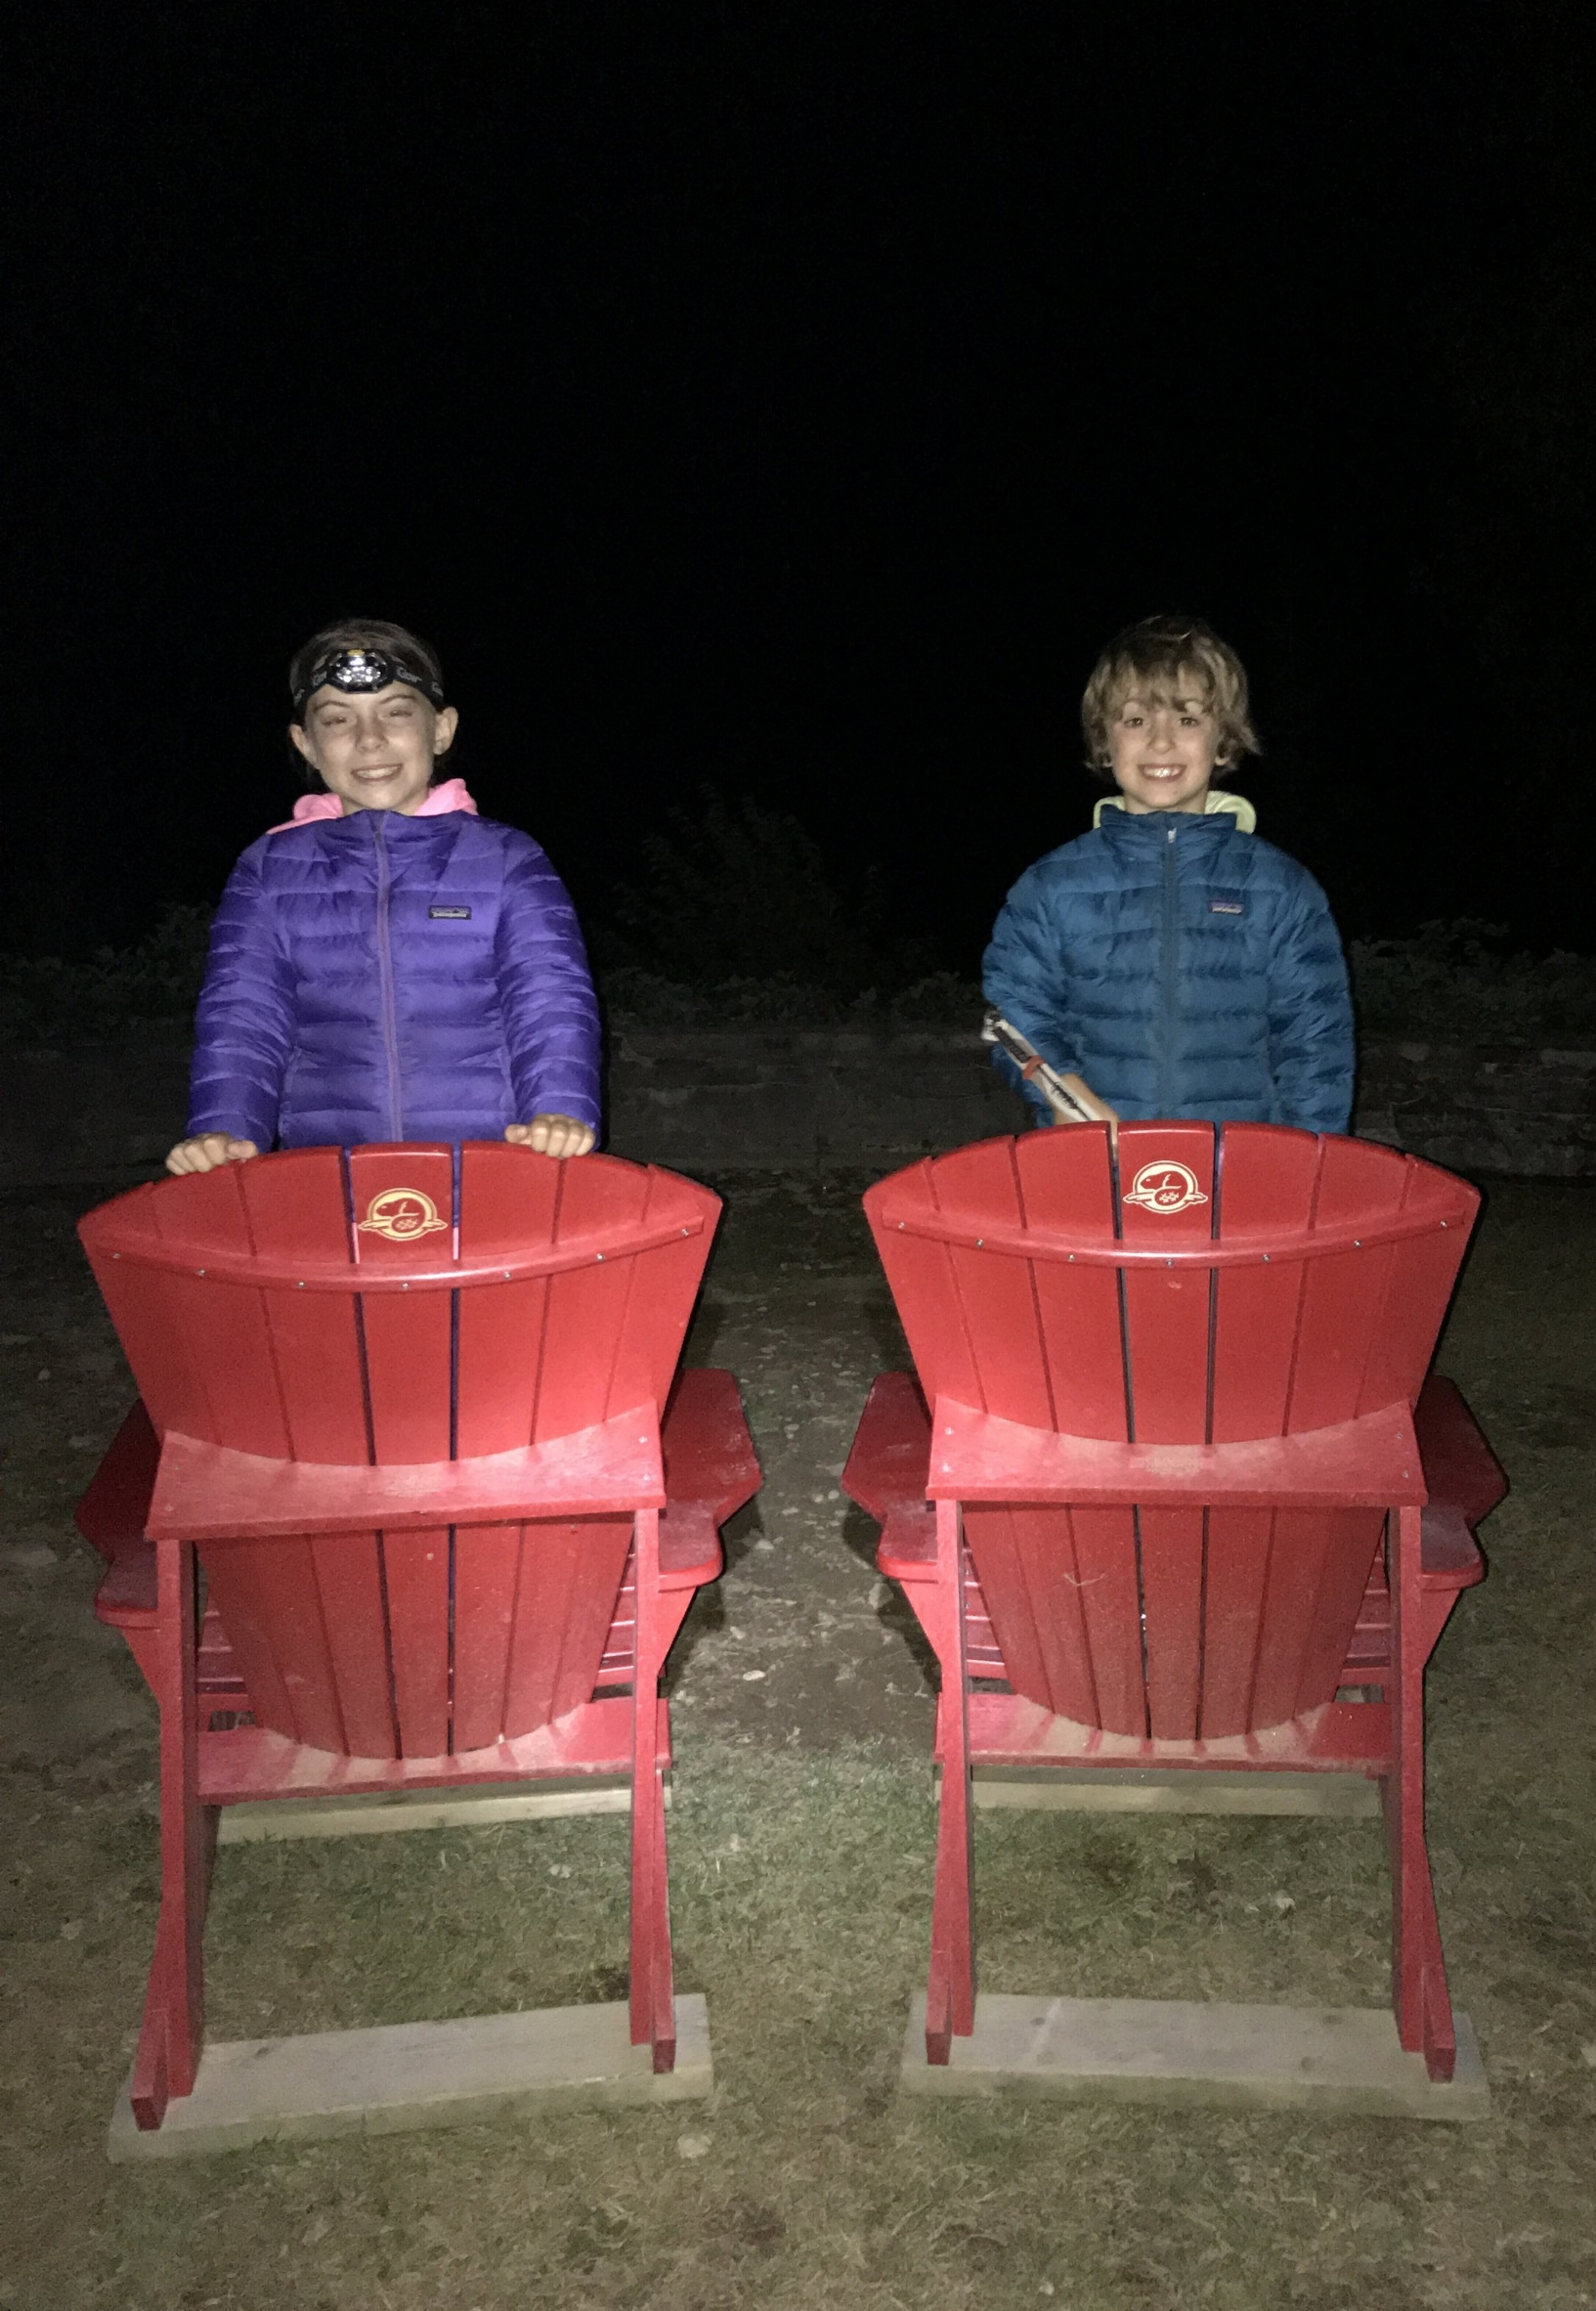 These chairs were the same chairs from the previous photo, but on the descent back to the lot at Cap-Bon Ami in Forillon. It became the most talked about hike on our 64 days on the road because of the novelty of hiking in the dark. It was a first for the kids!